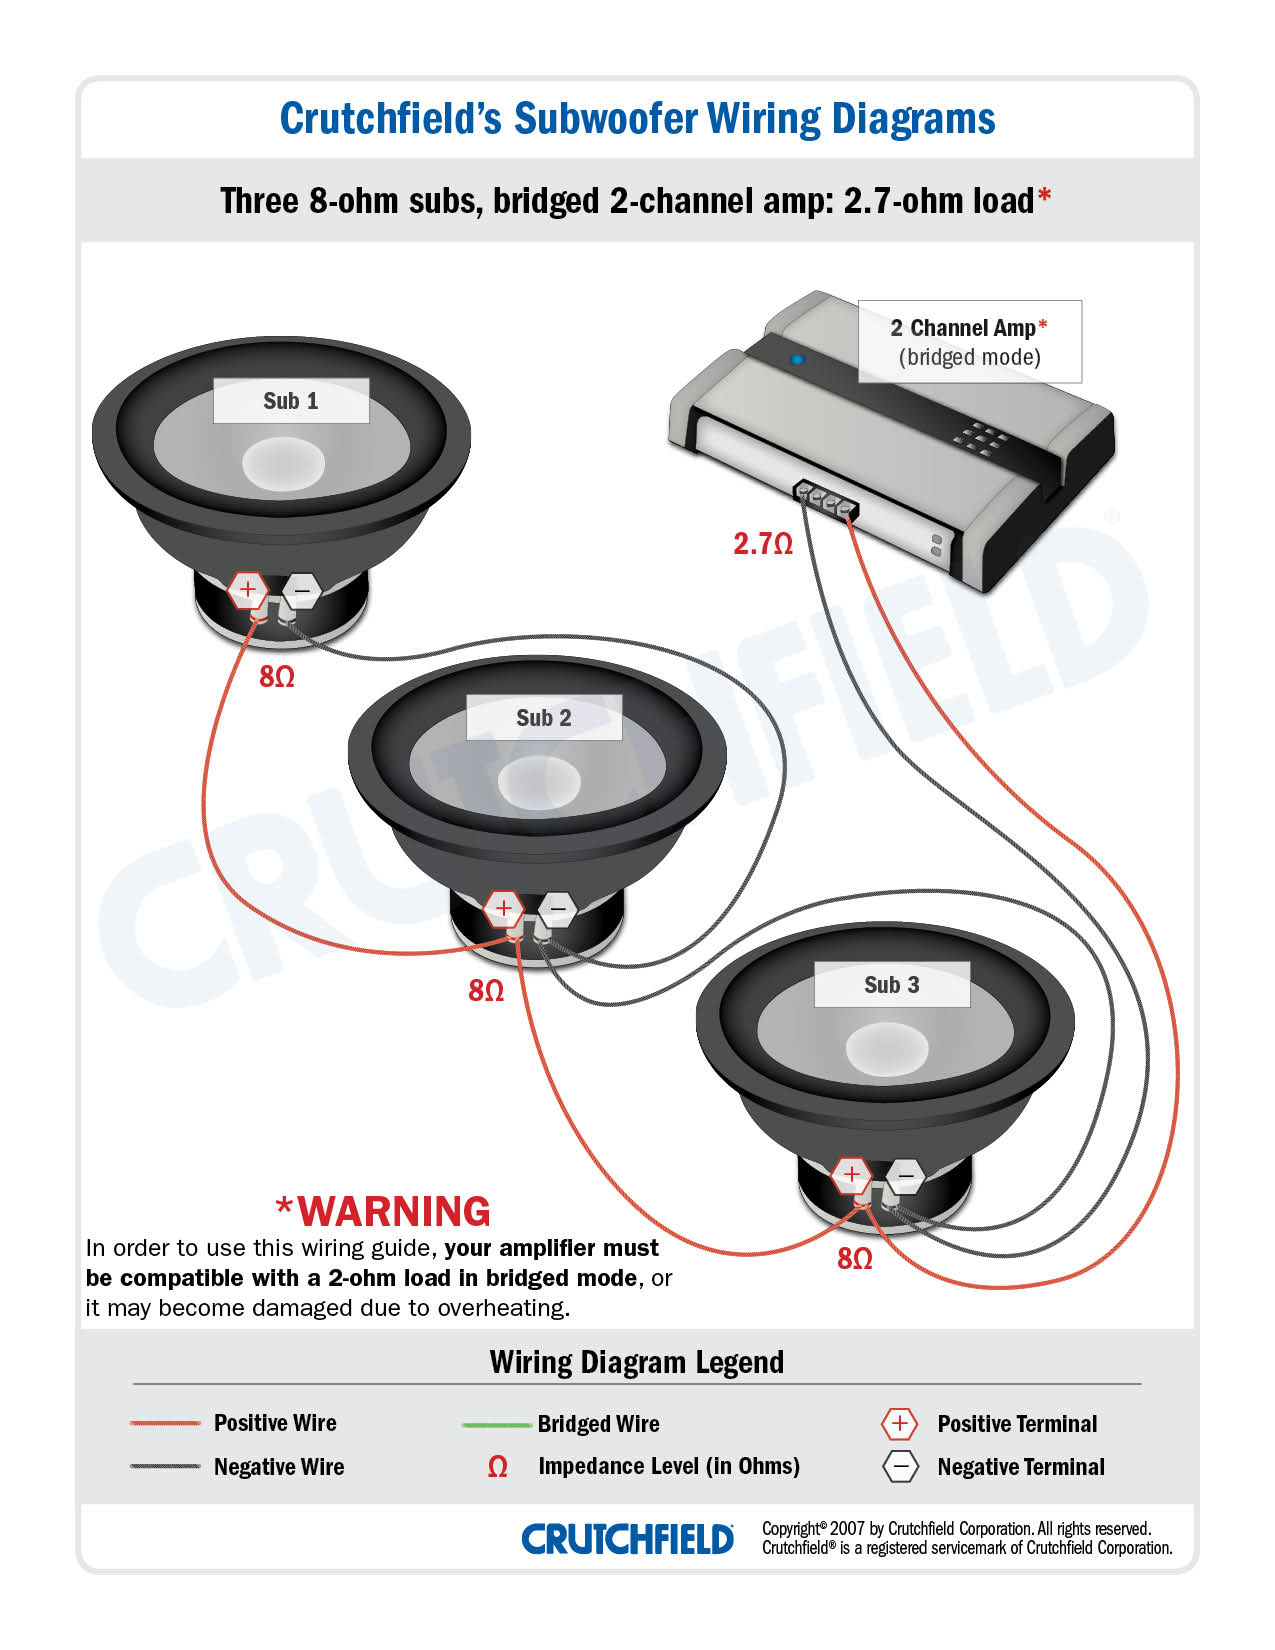 3 SVC 8 ohm 2 ch low imp subwoofer wiring diagrams Alpine MRX-M110 Specifications at webbmarketing.co